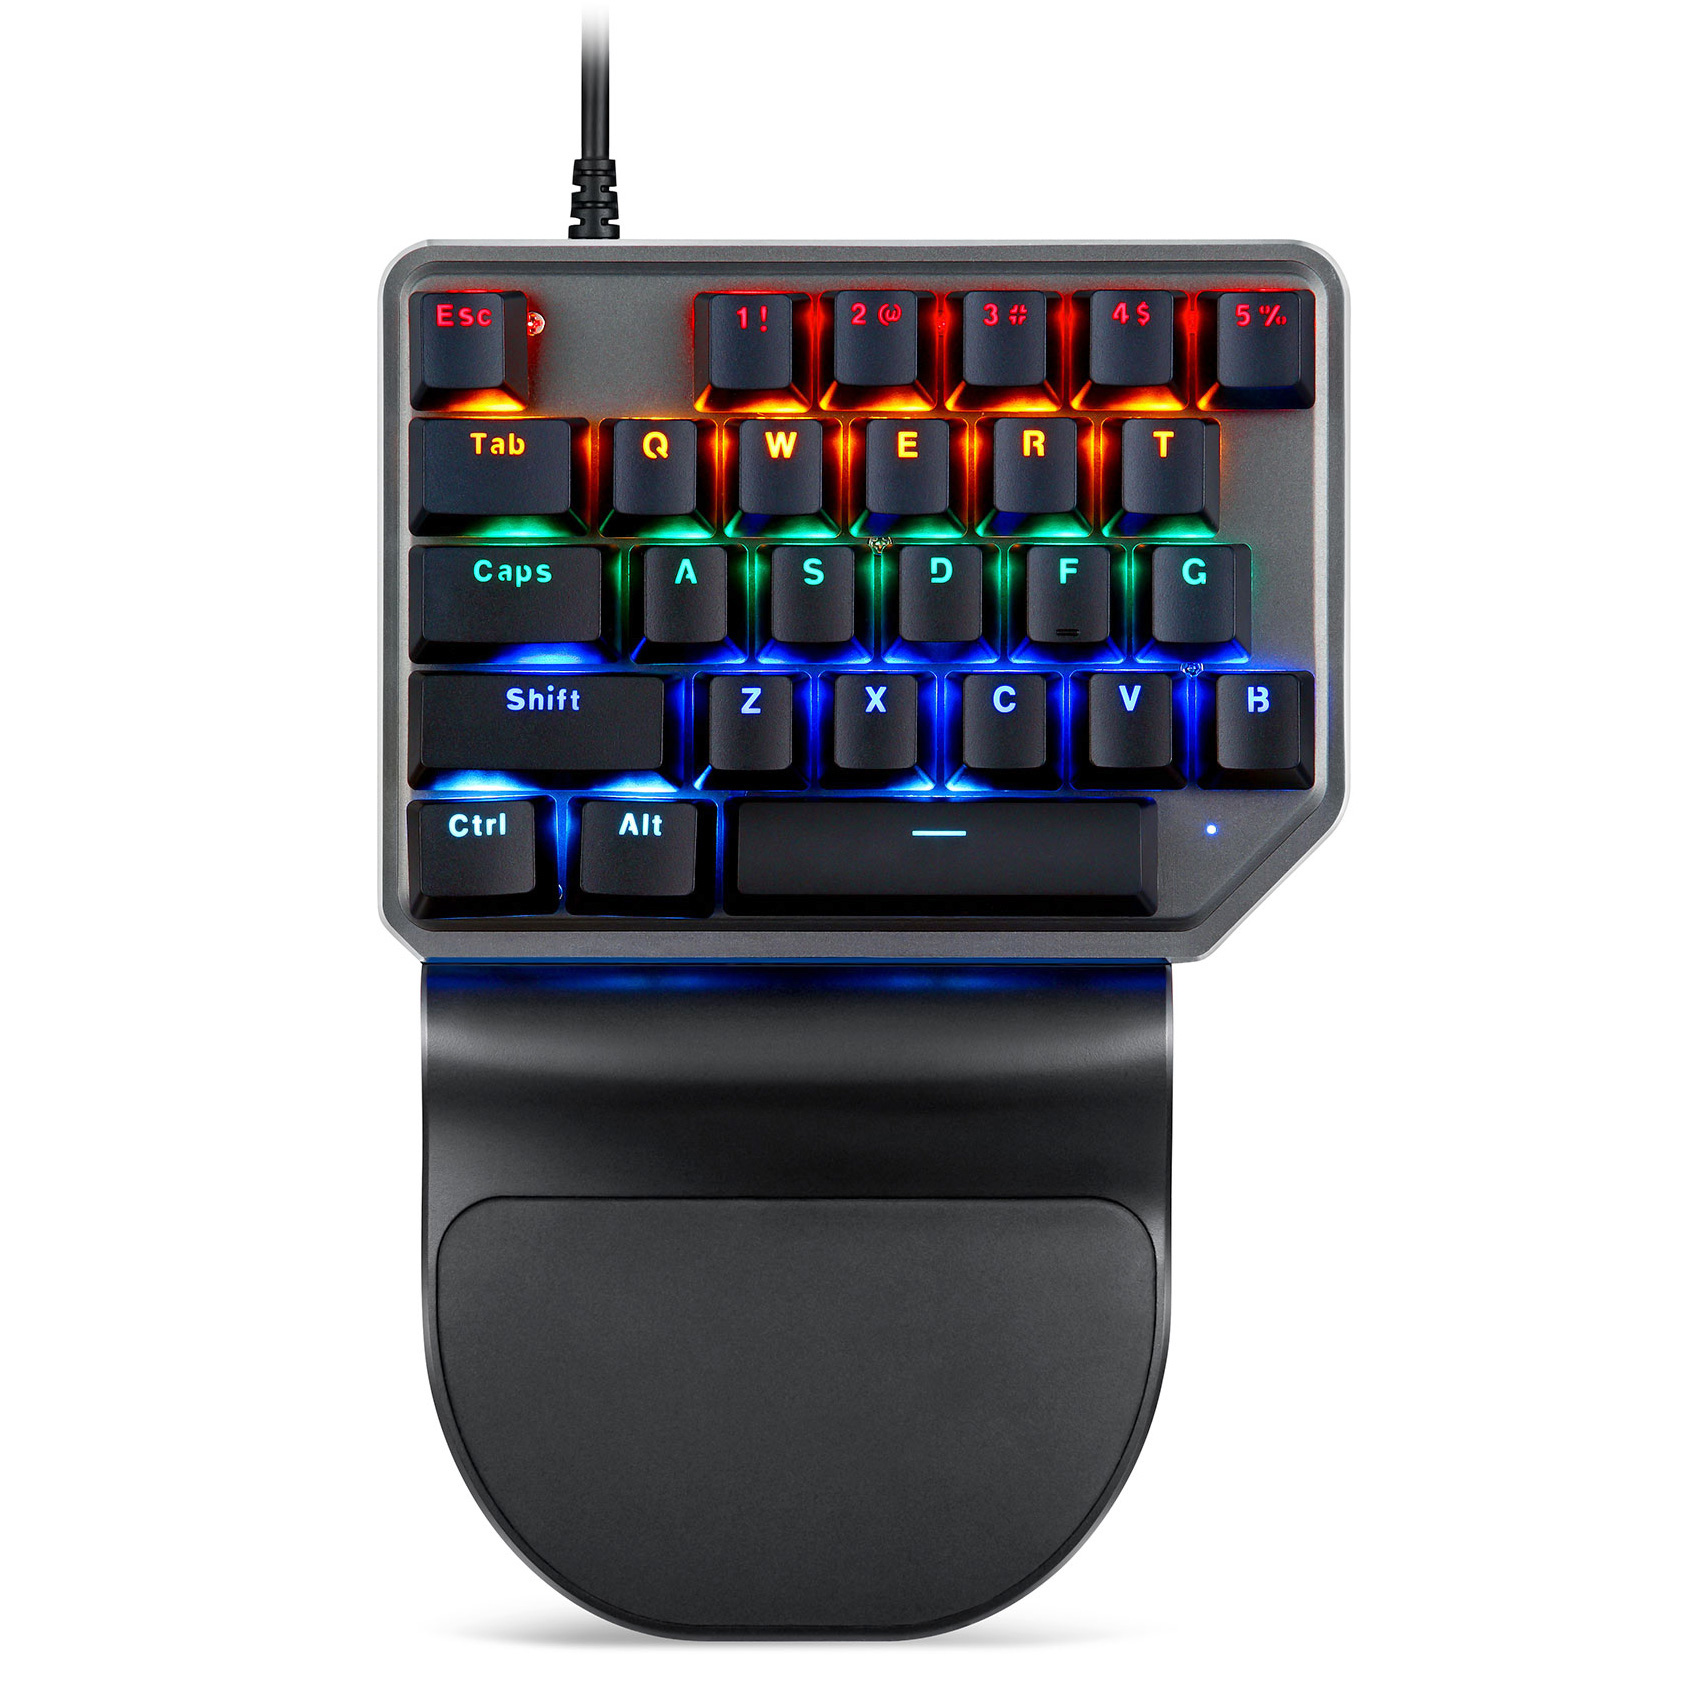 Motospeed K27 USB Wired Singlehanded Mechanical Keyboard